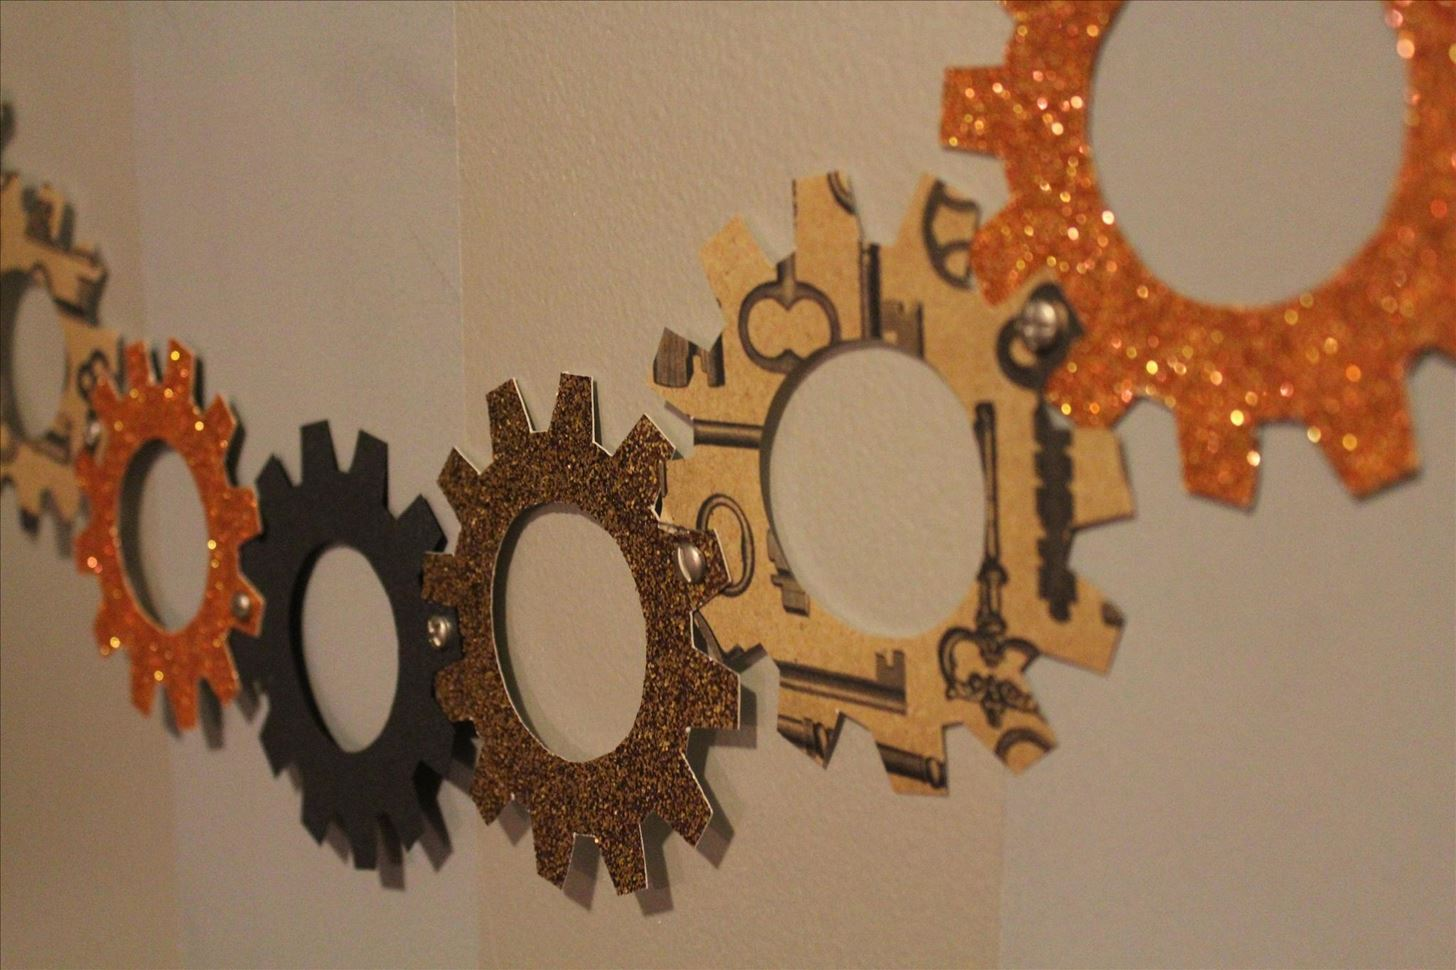 steampunk your halloween decorations with these diy interlocking paper gears steampunk rd wonderhowto - Paper Halloween Decorations